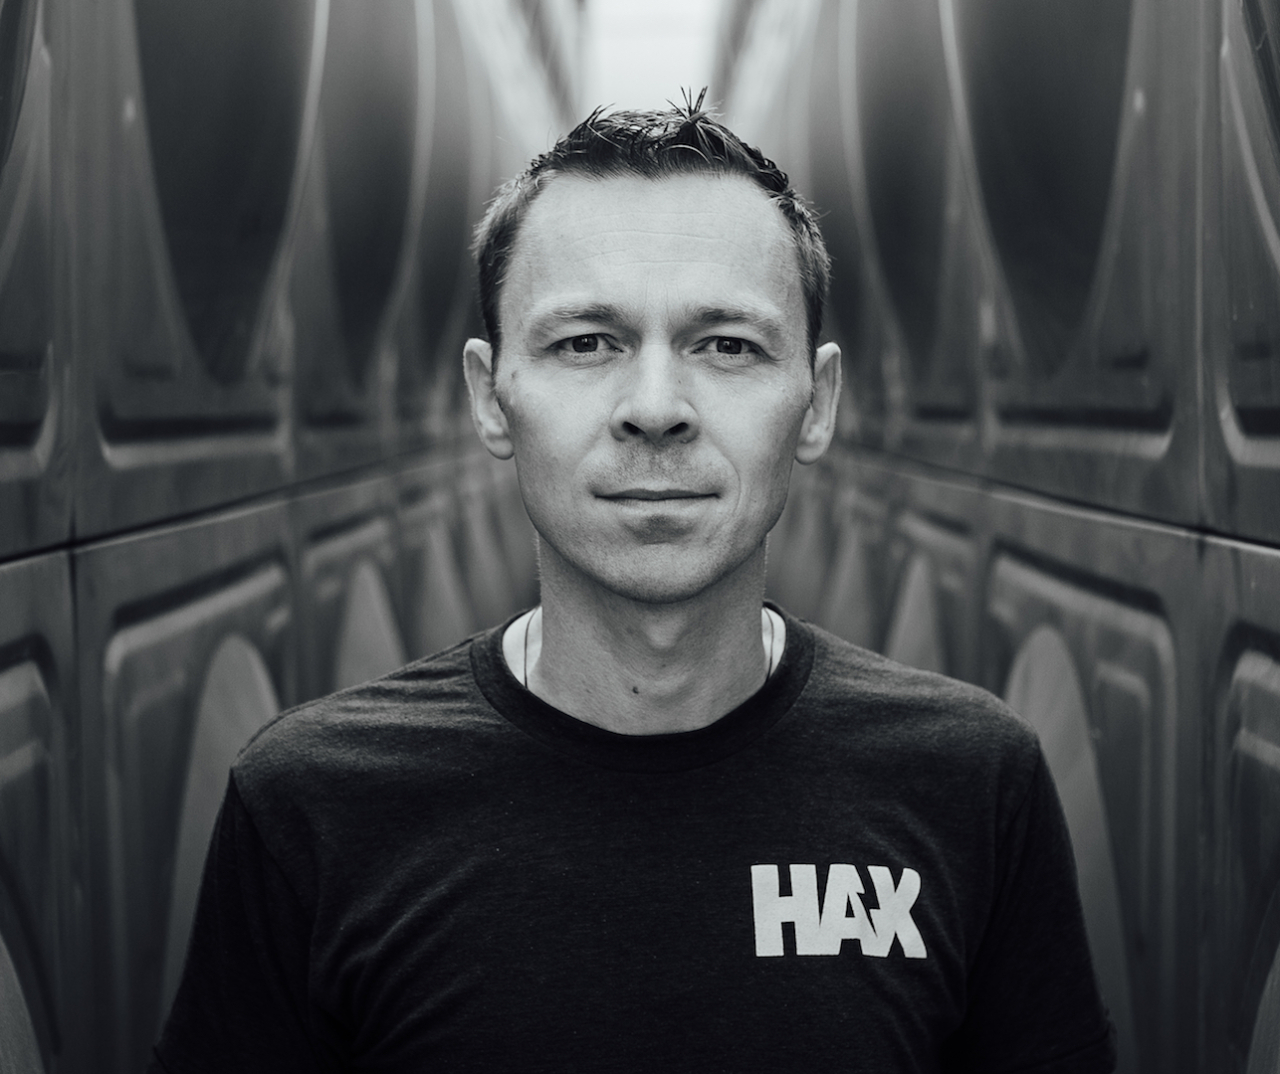 Cyril Ebersweiler, founder and managing director of HAX. (HAX)